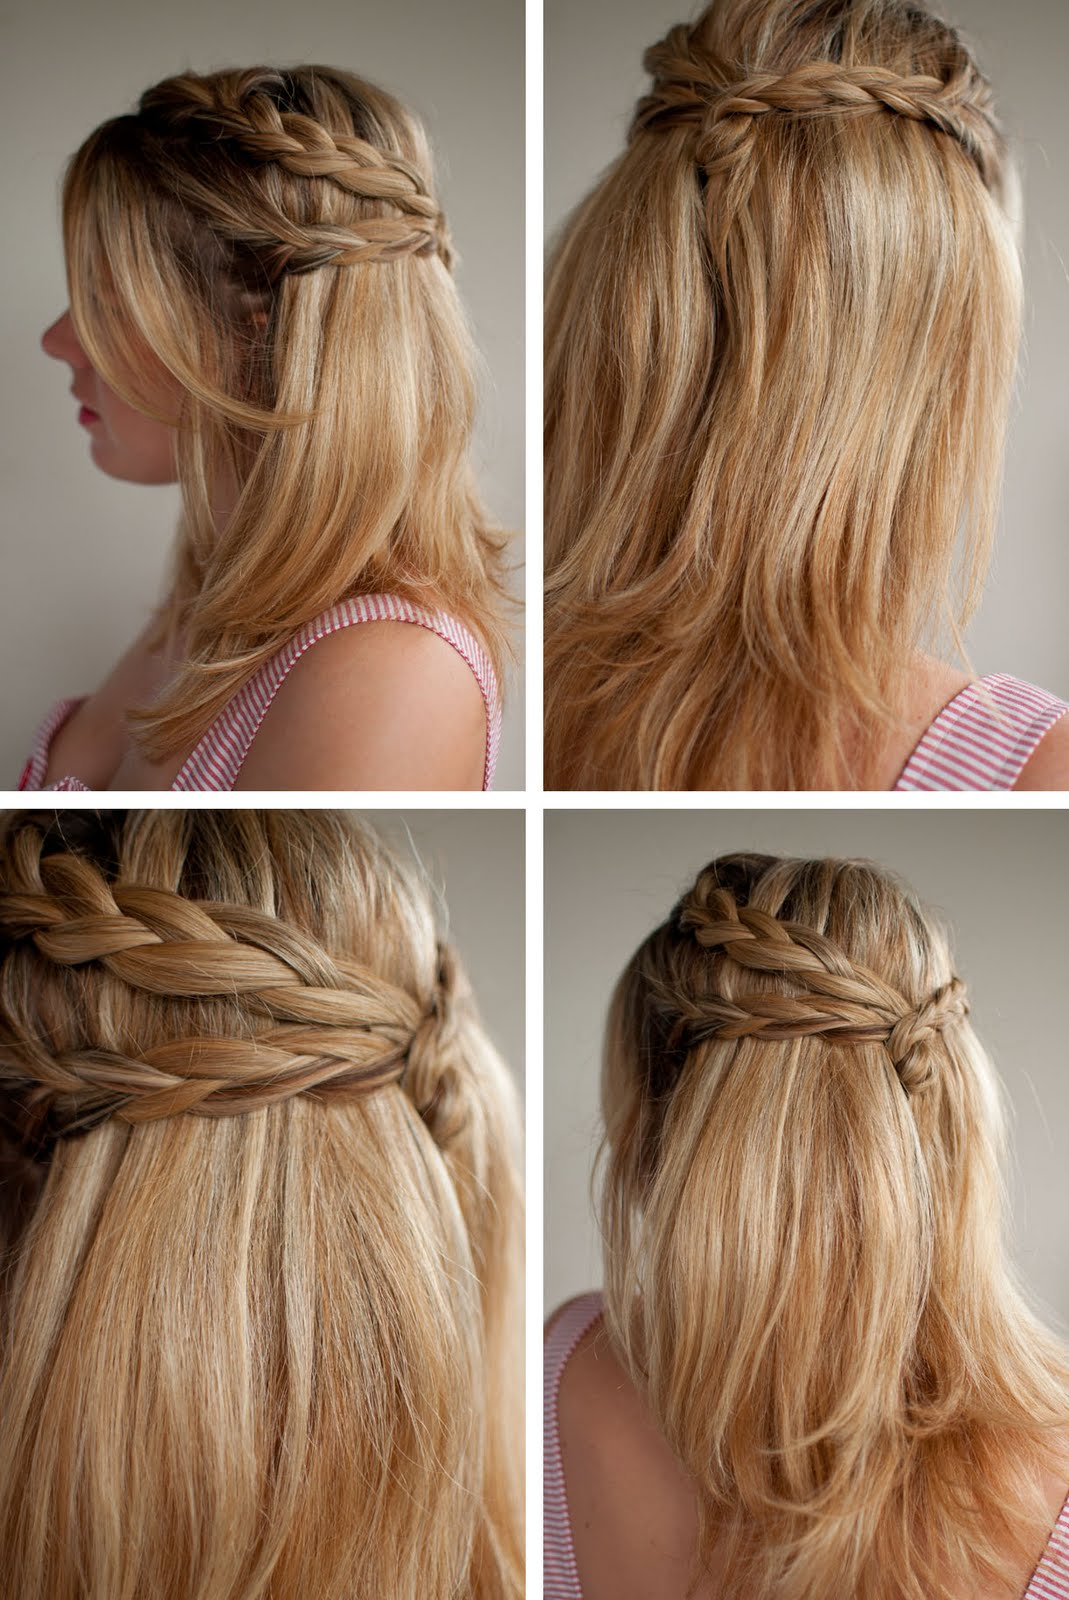 do this hairstyle check out my ebook 30 days of twist pin hairstyles. 1069 x 1600.Hairstyles To Do For Picture Day